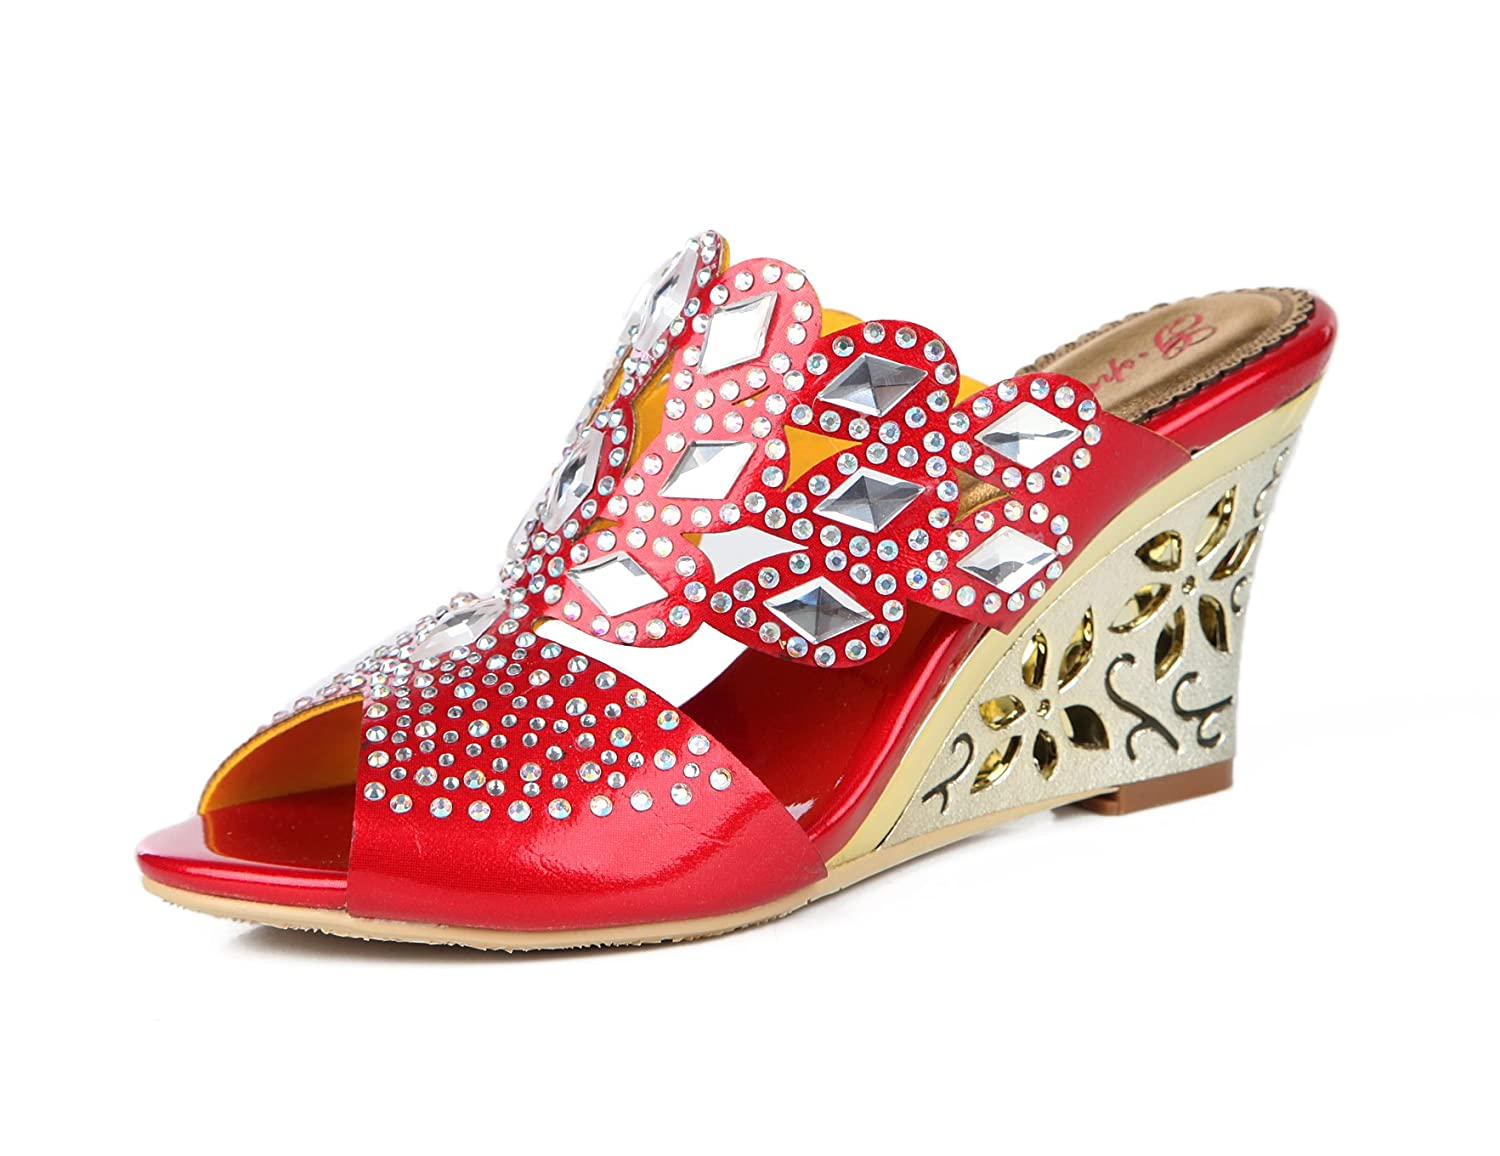 Honeystore Women's Rhombus Rhinestones Handmade Party Wedge Sandals B0721PX79T 7.5 B(M) US|Red